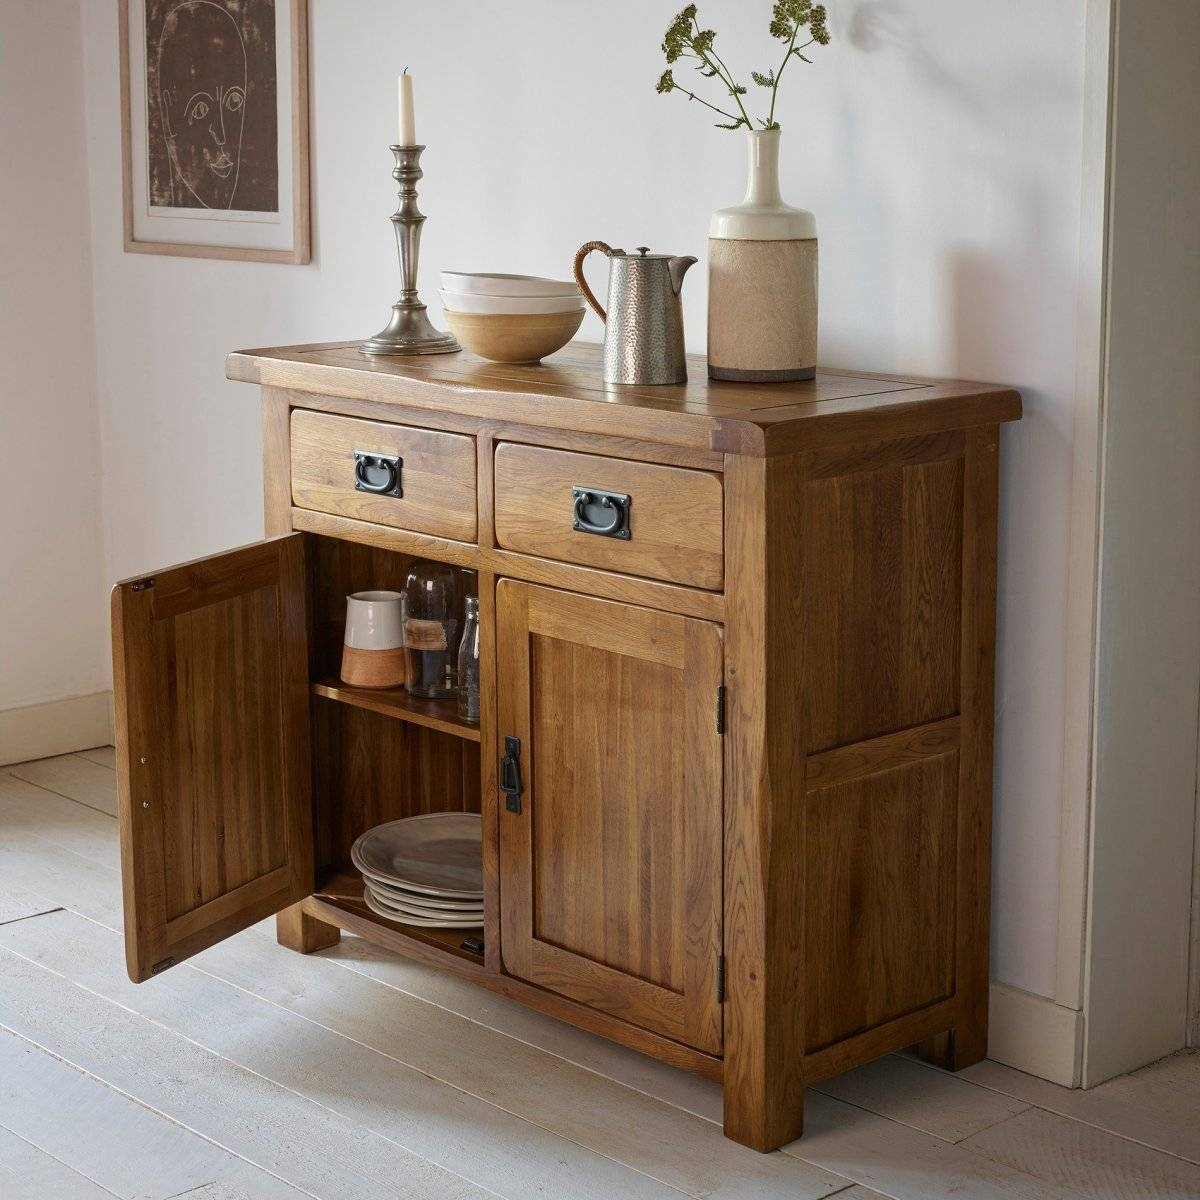 Original Rustic Solid Oak Small Sideboard | Oak Furniture Land Inside Small Wooden Sideboards (#10 of 15)